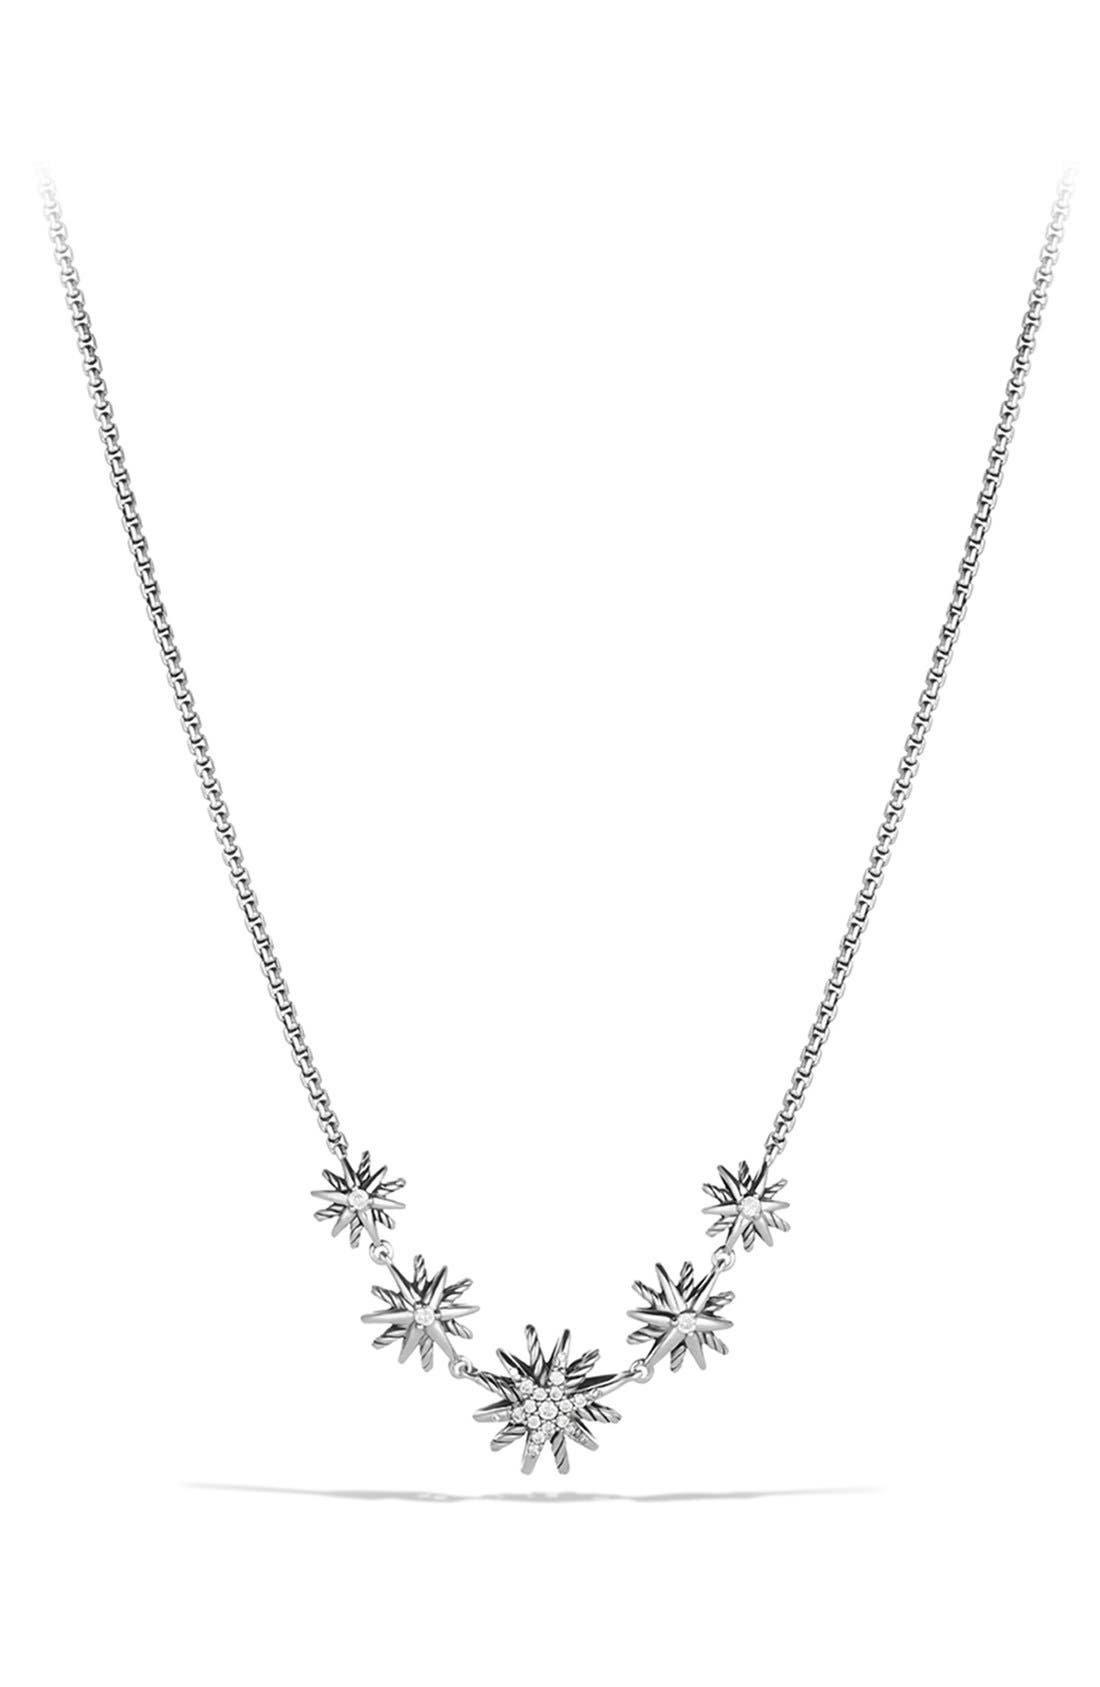 'Starburst' Five-Station Necklace with Diamonds,                         Main,                         color, STERLING SILVER